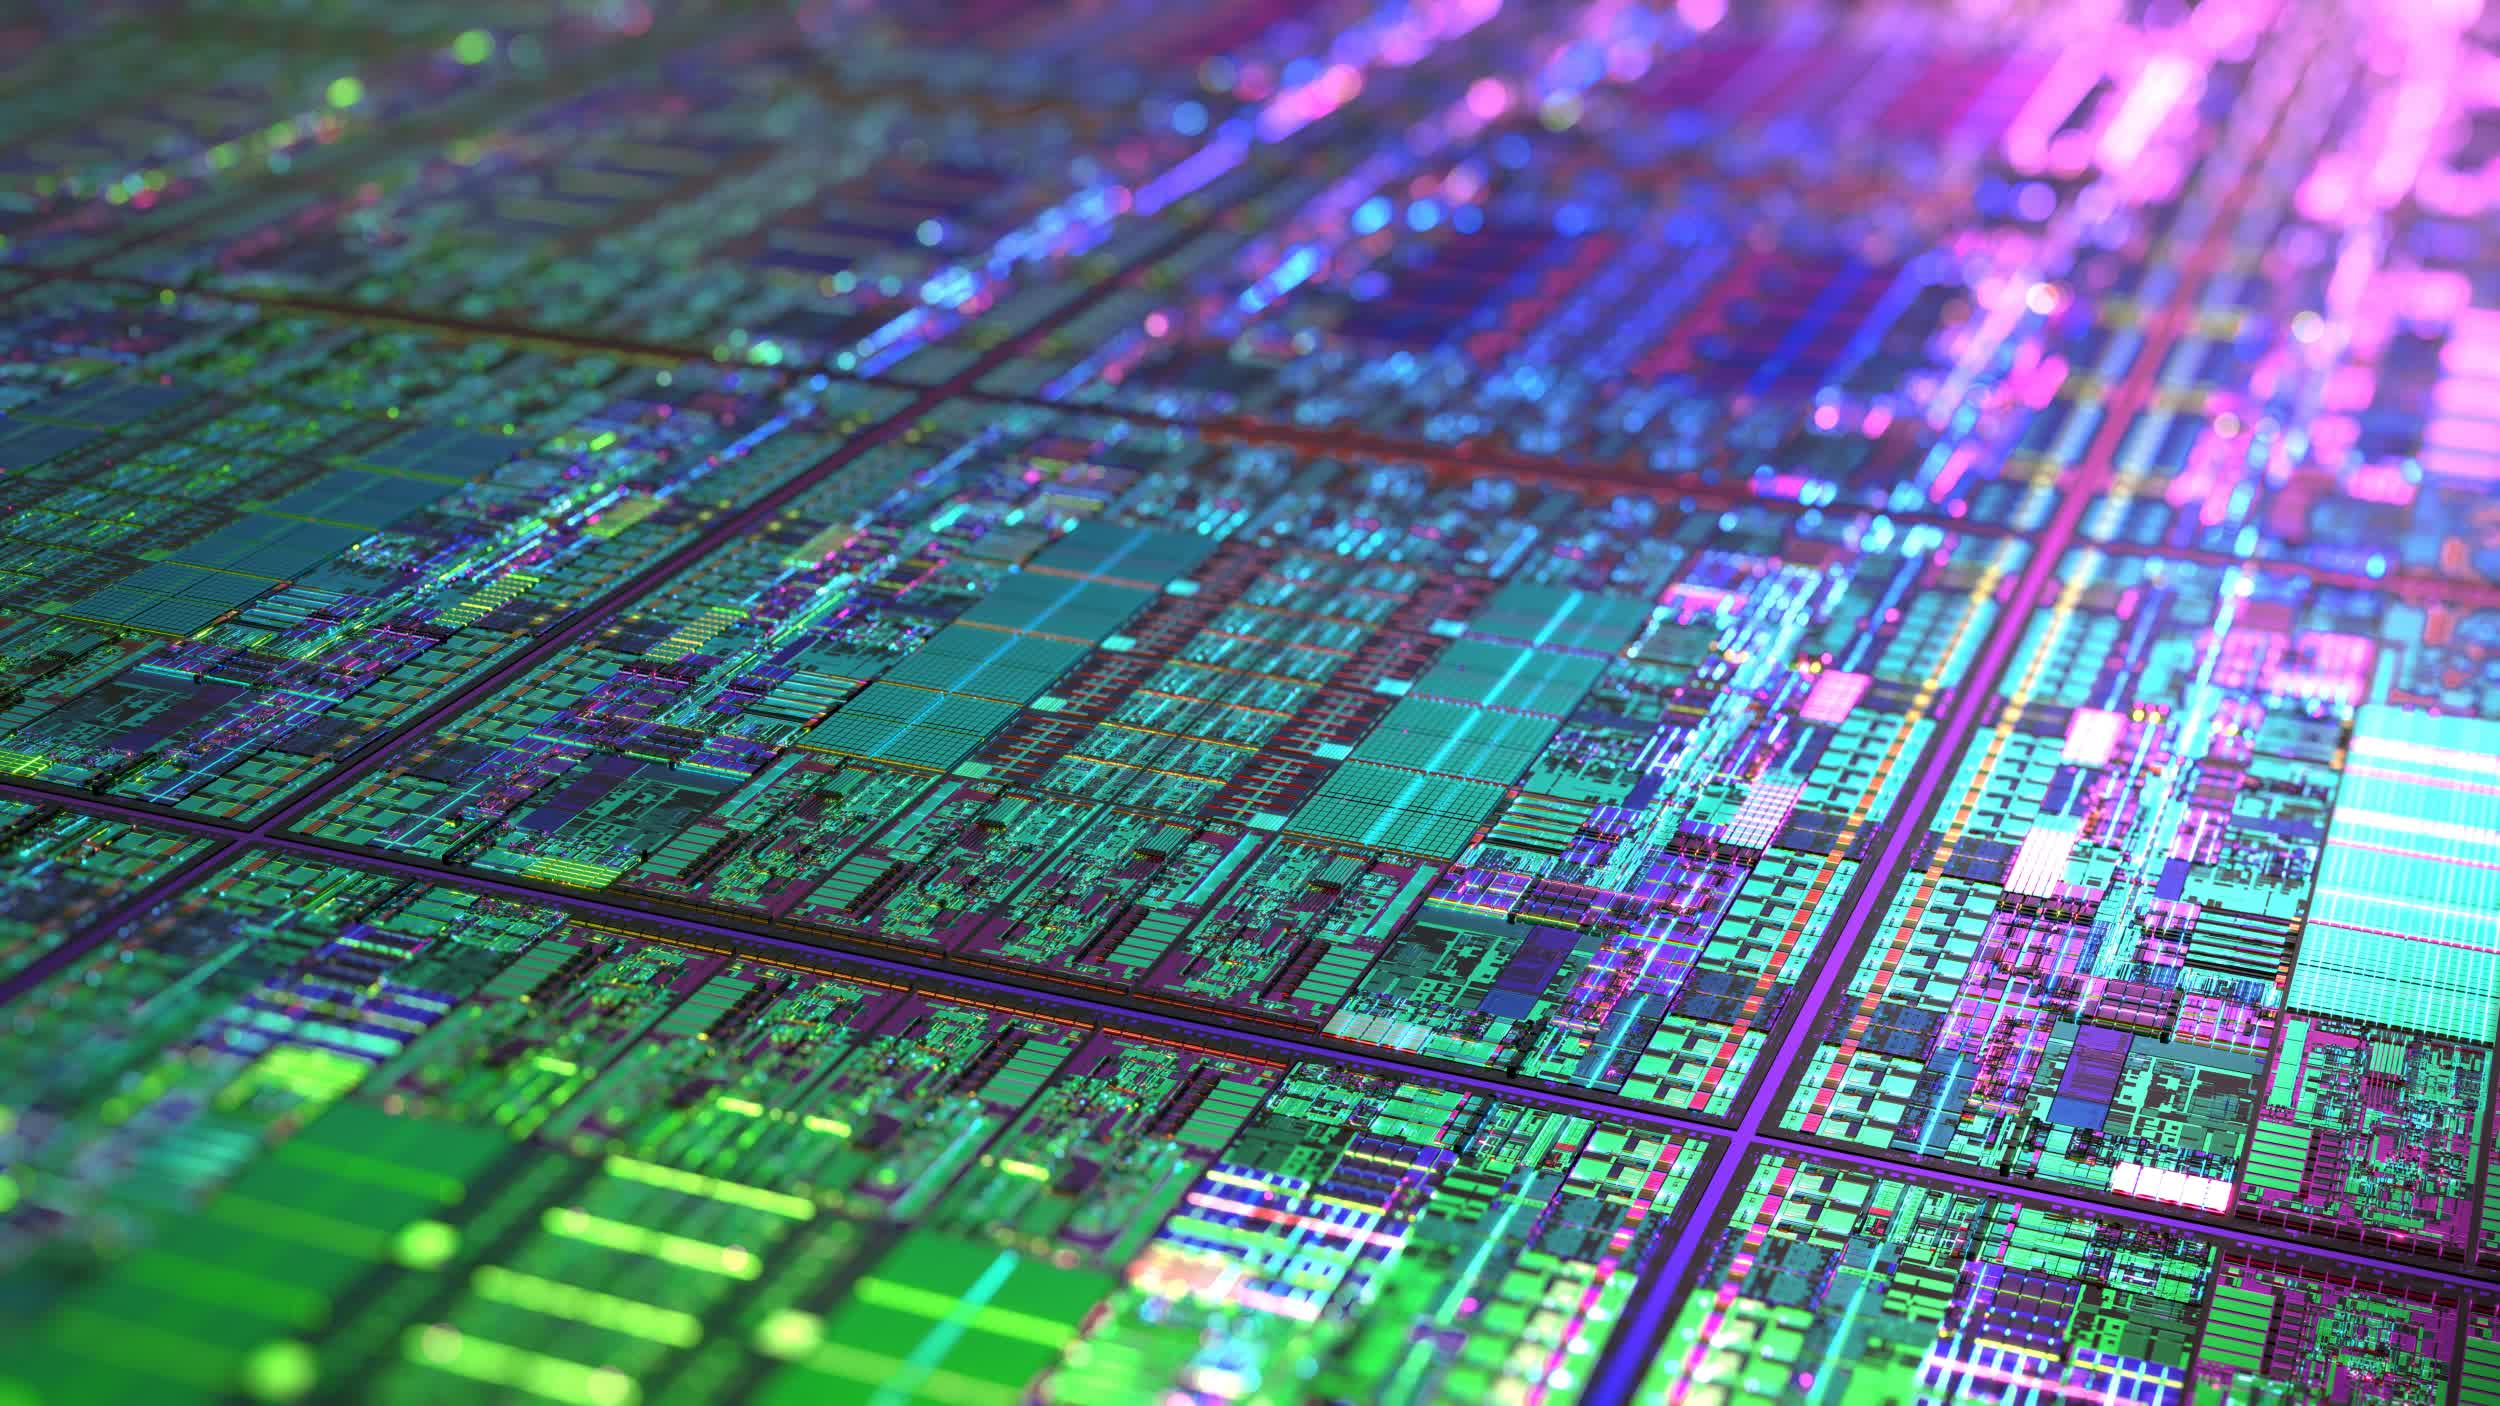 TSMC could be planning a huge fab expansion in Arizona